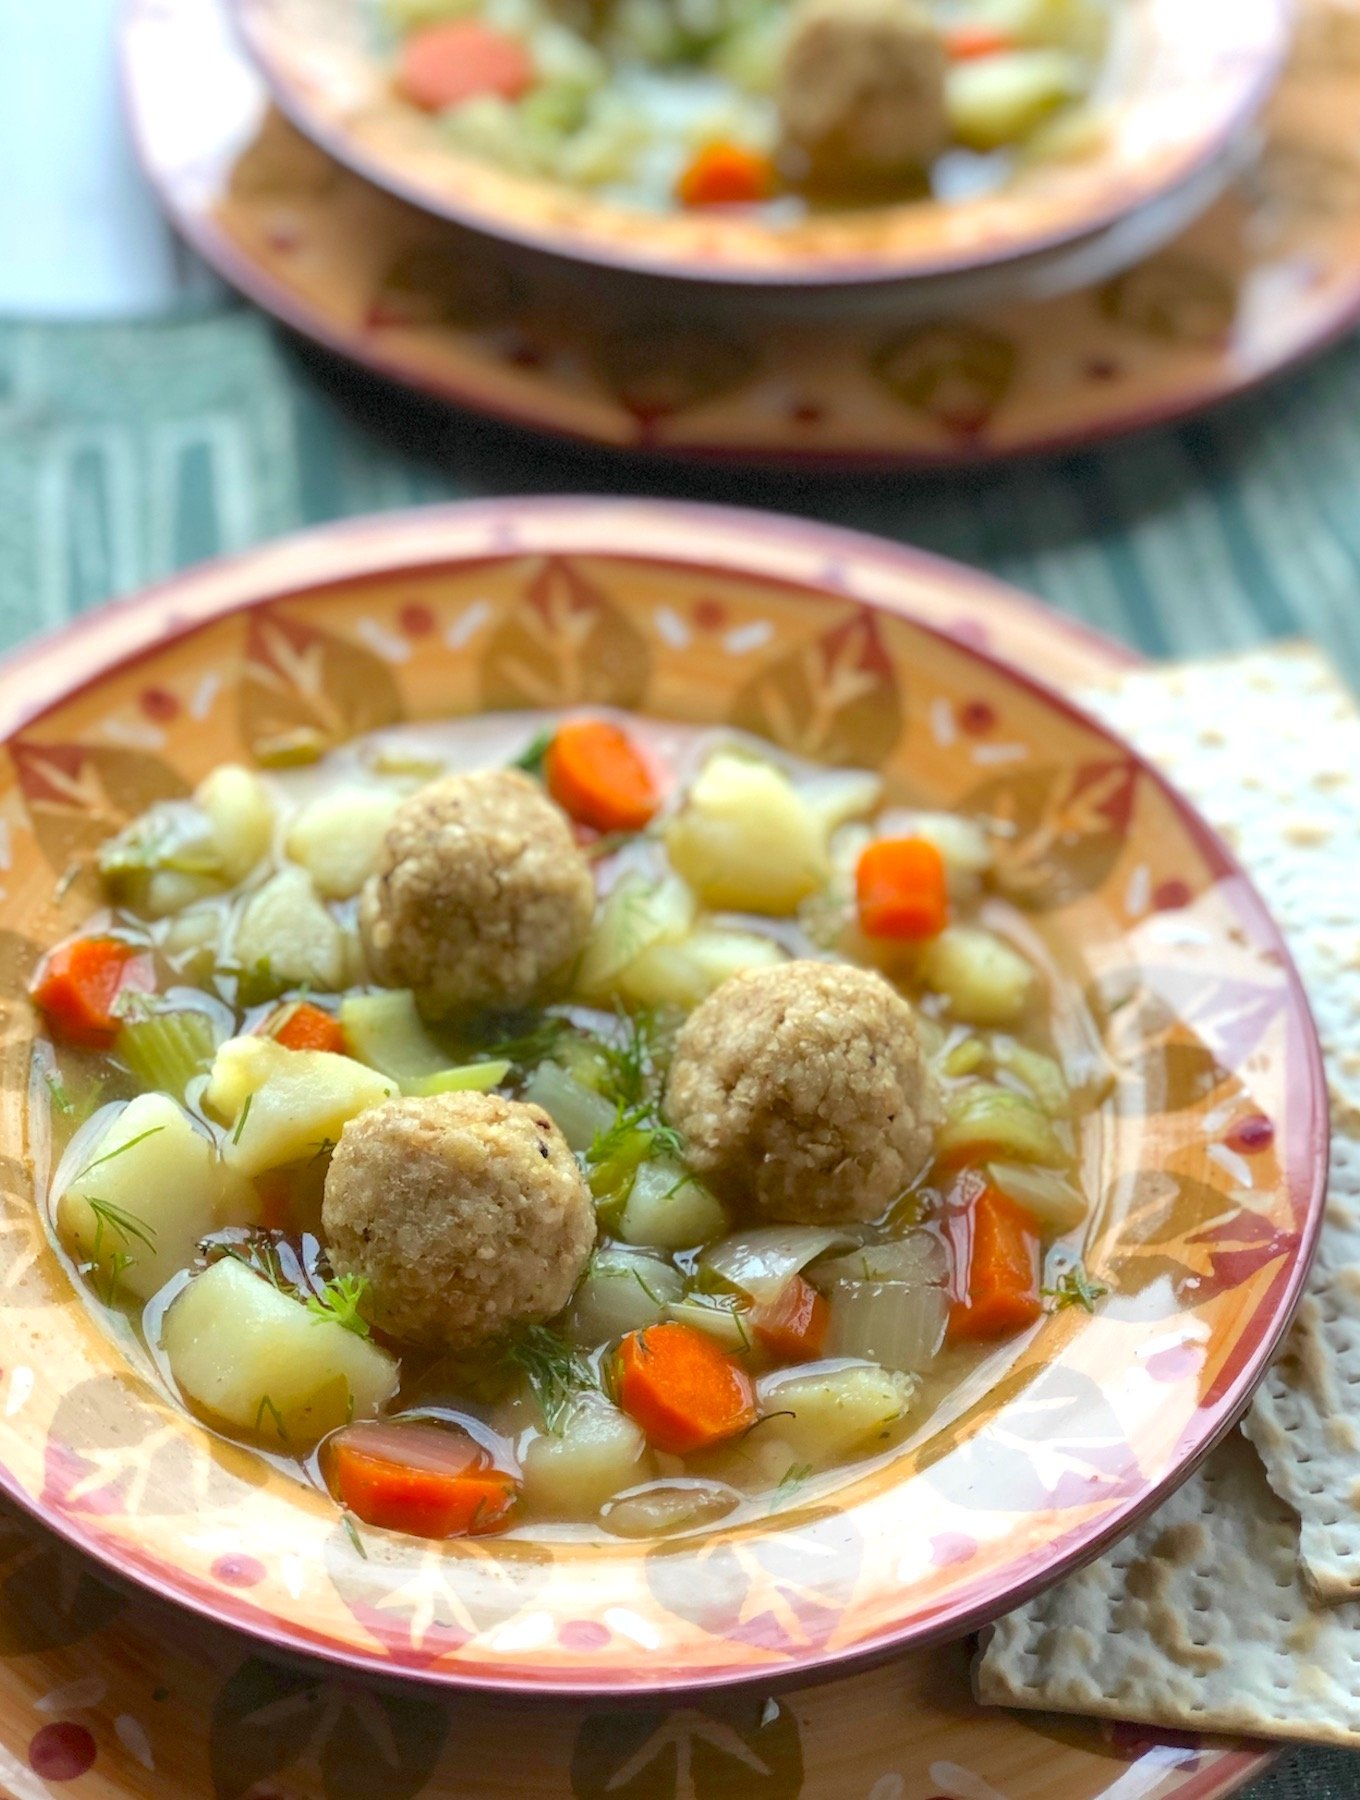 Vegan Matzo balls recipe